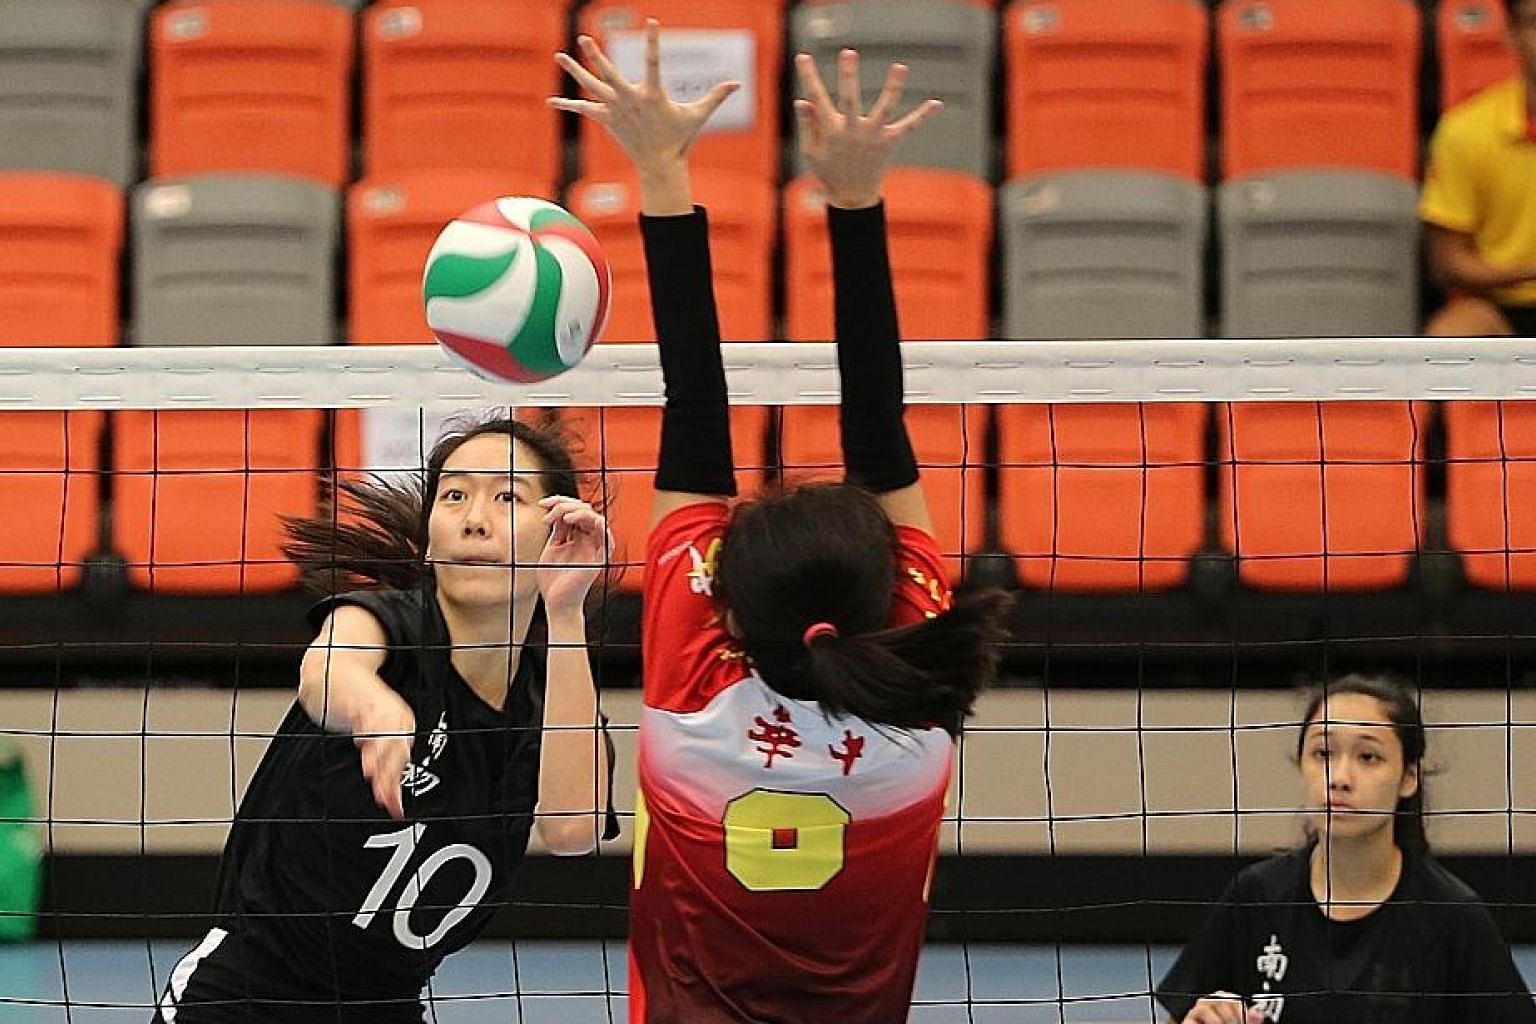 The Nanyang Junior College girls' volleyball team beating Hwa Chong Institution to win their fifth straight A Div title last year. Their hopes of extending the streak was hampered by the lack of sparring partners as their alumni were barred from returning